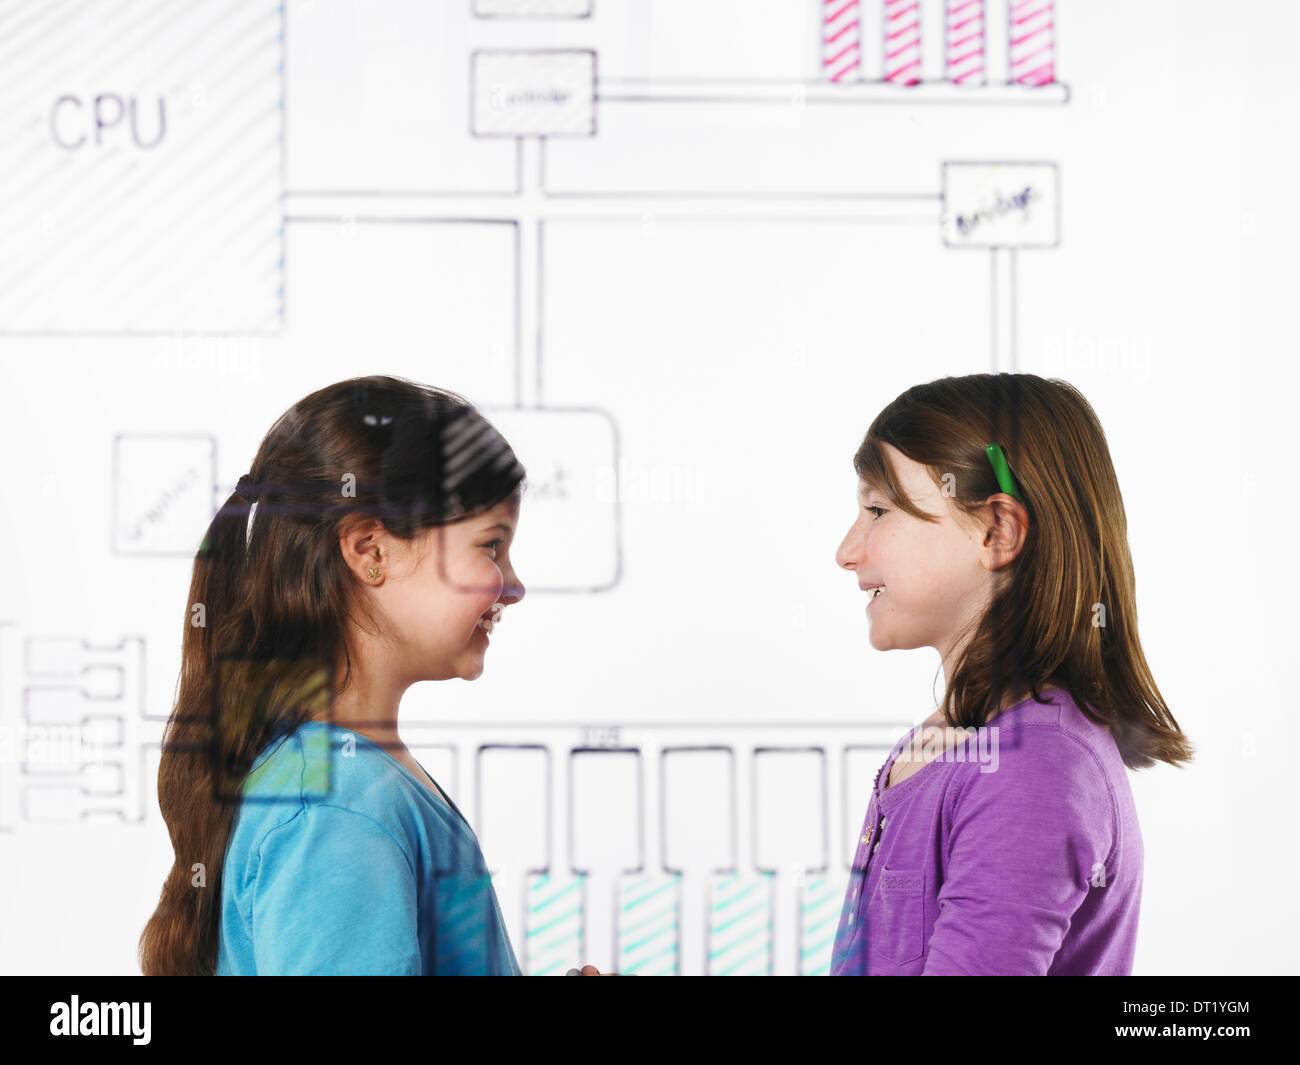 Two children facing each other behind a drawing of a computer motherboard circuit drawn on a see through clear surface - Stock Image